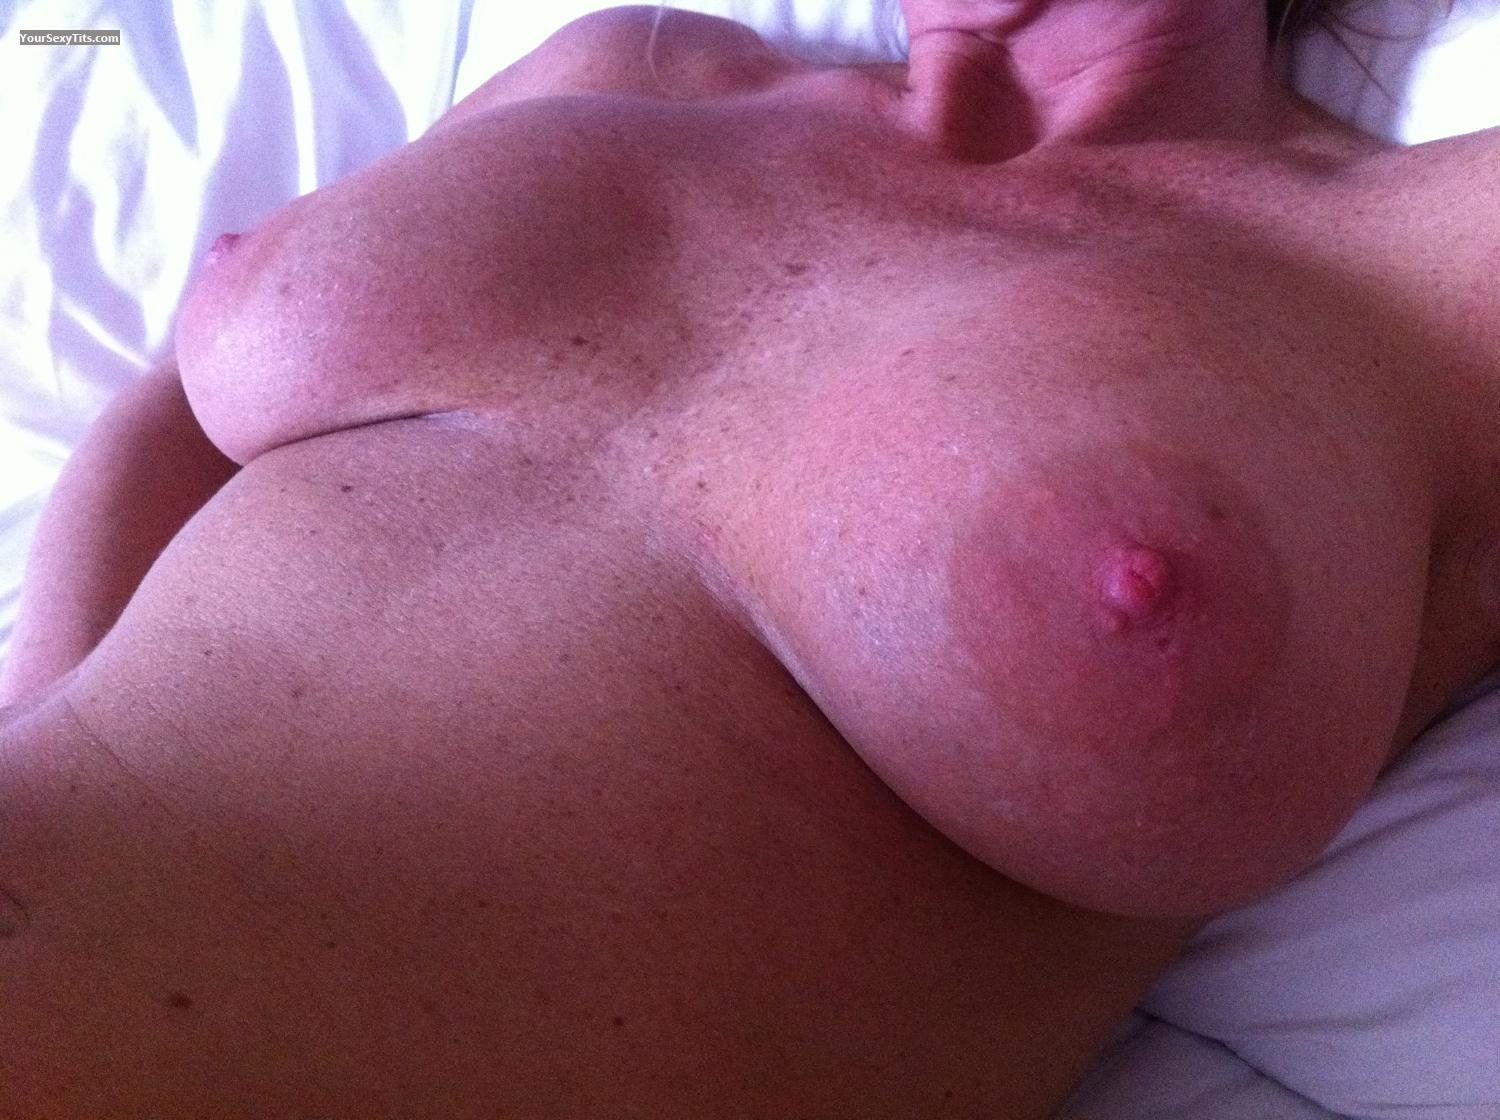 Tit Flash: My Big Tits By IPhone (Selfie) - Lil Miss from United States